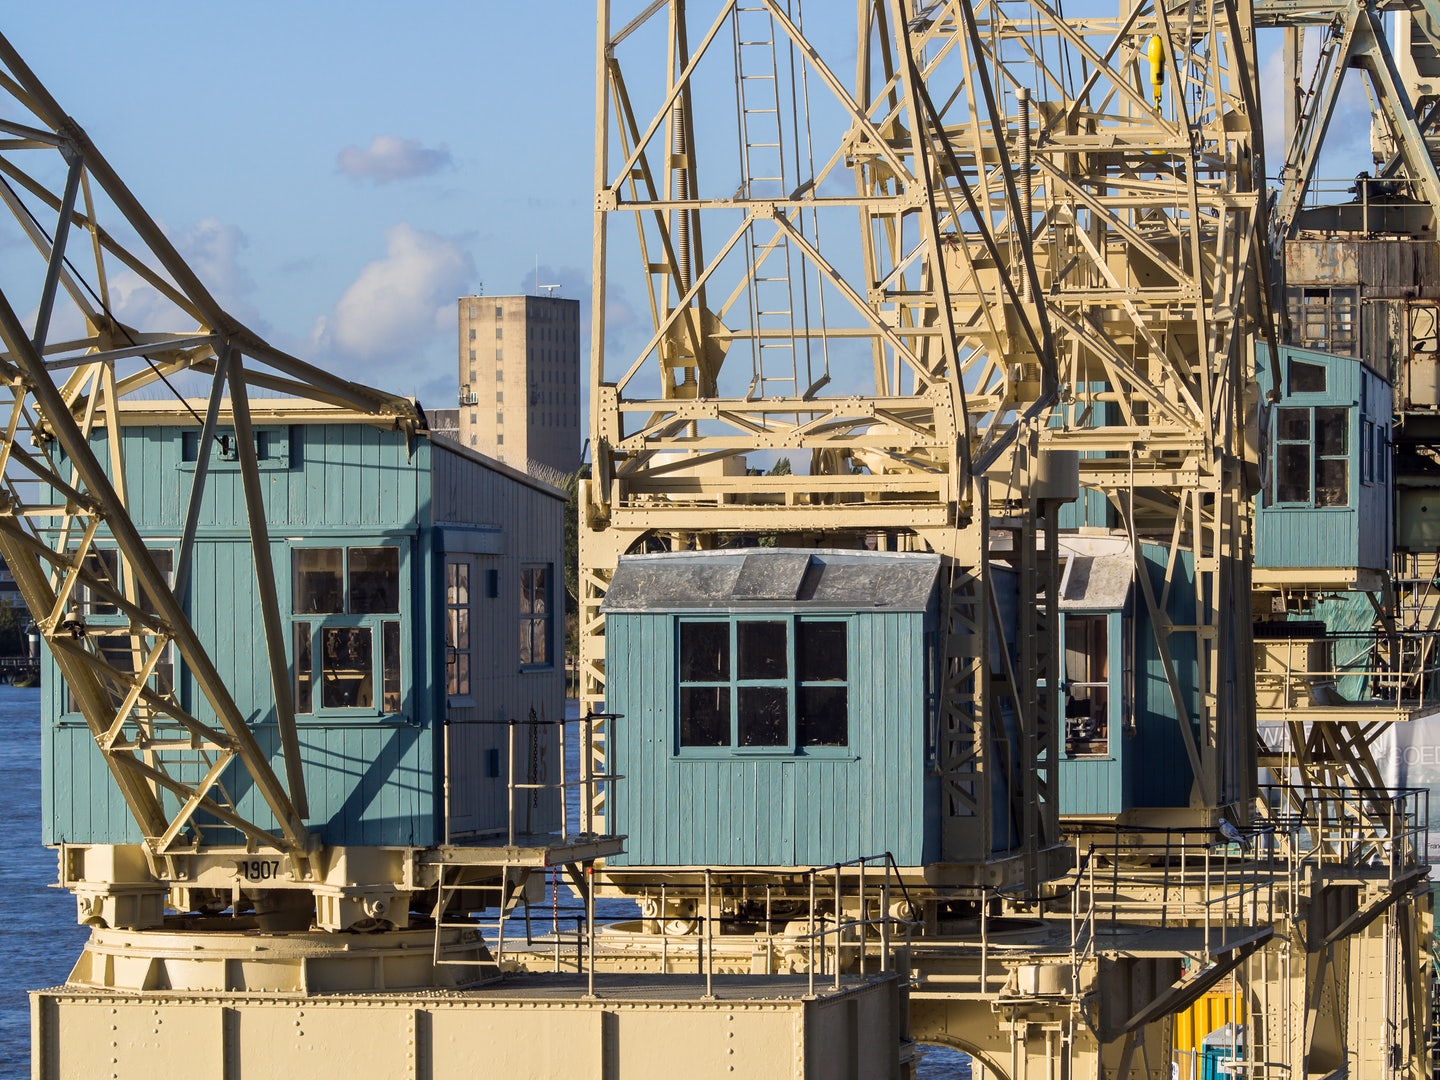 yellow and blue Cranes in Antwerp